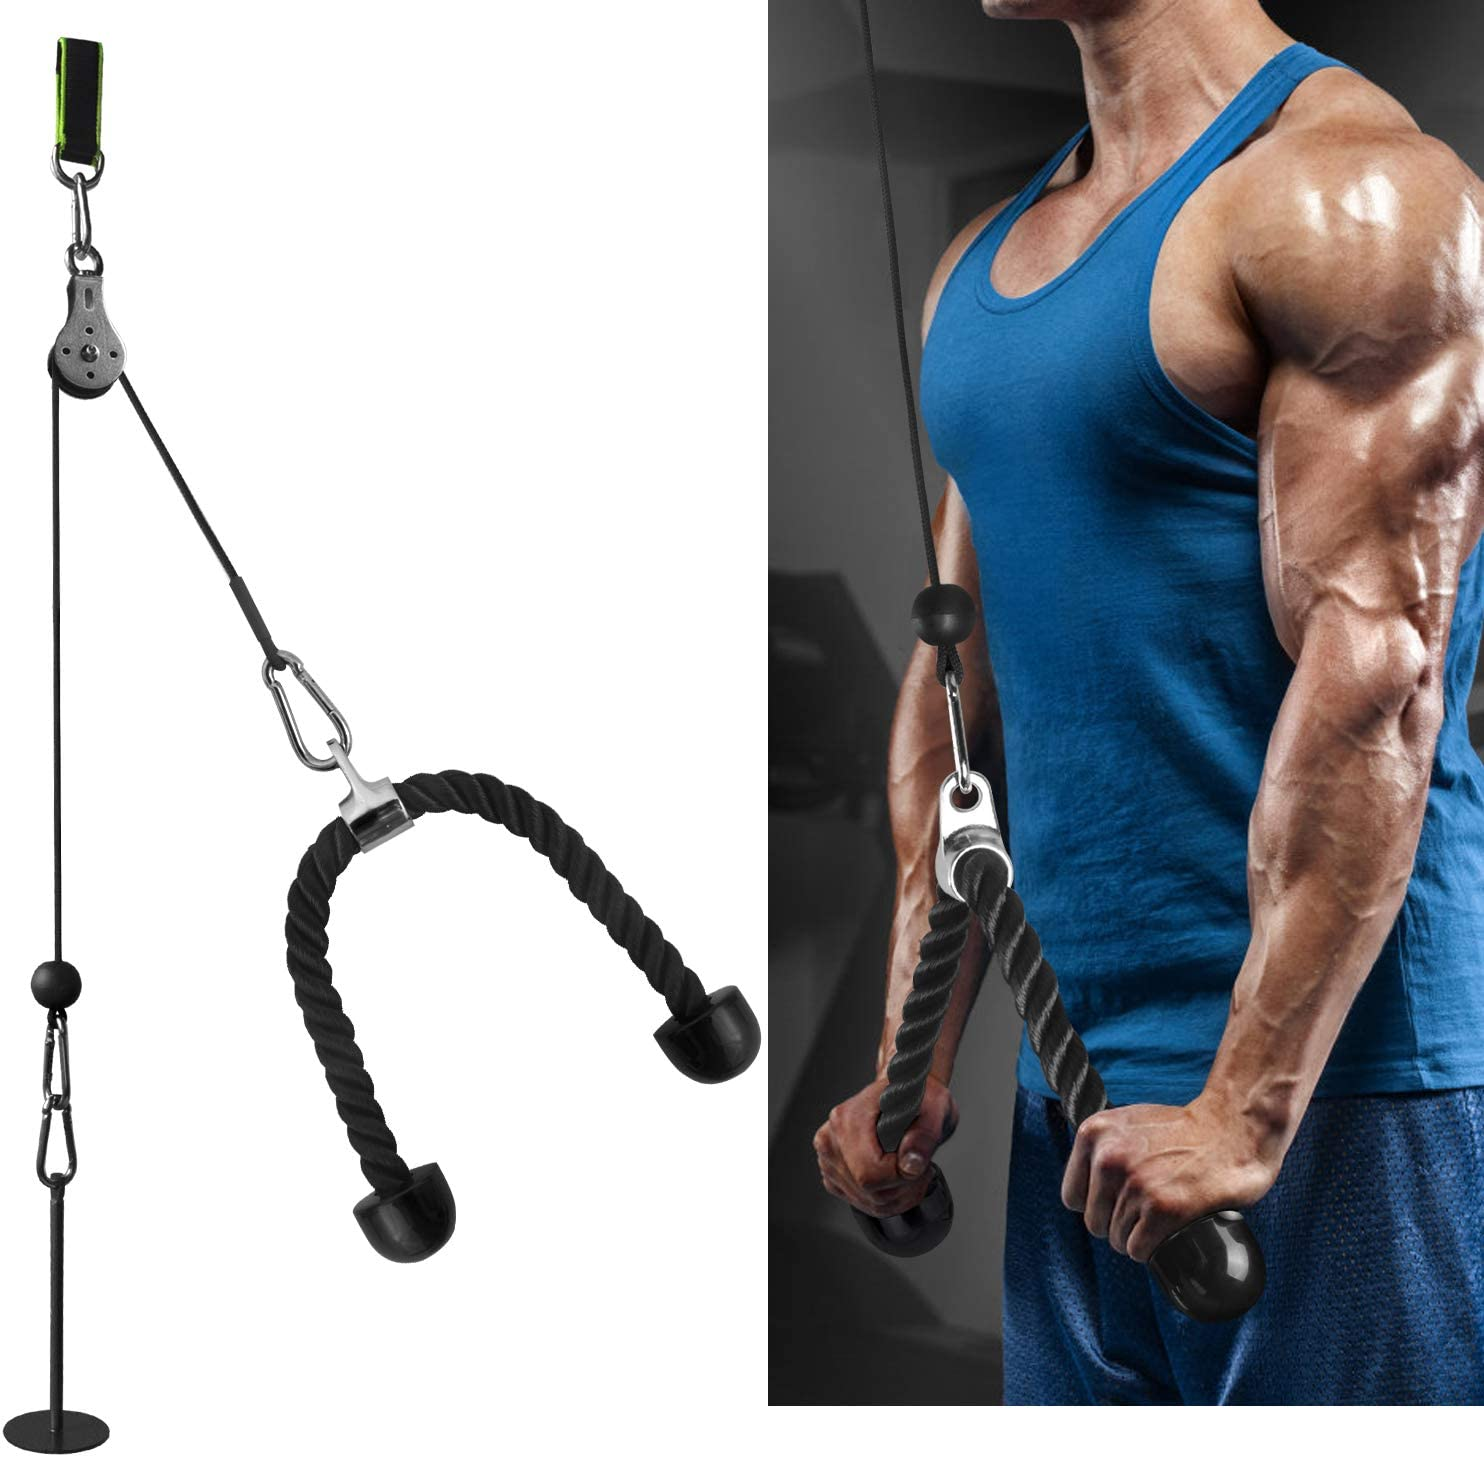 FASPUP Forearm Wrist Trainer Arm Strength Trainer Heavy-Duty Pulley System for Back, Forearm and Shoulder Training : Sports & Outdoors